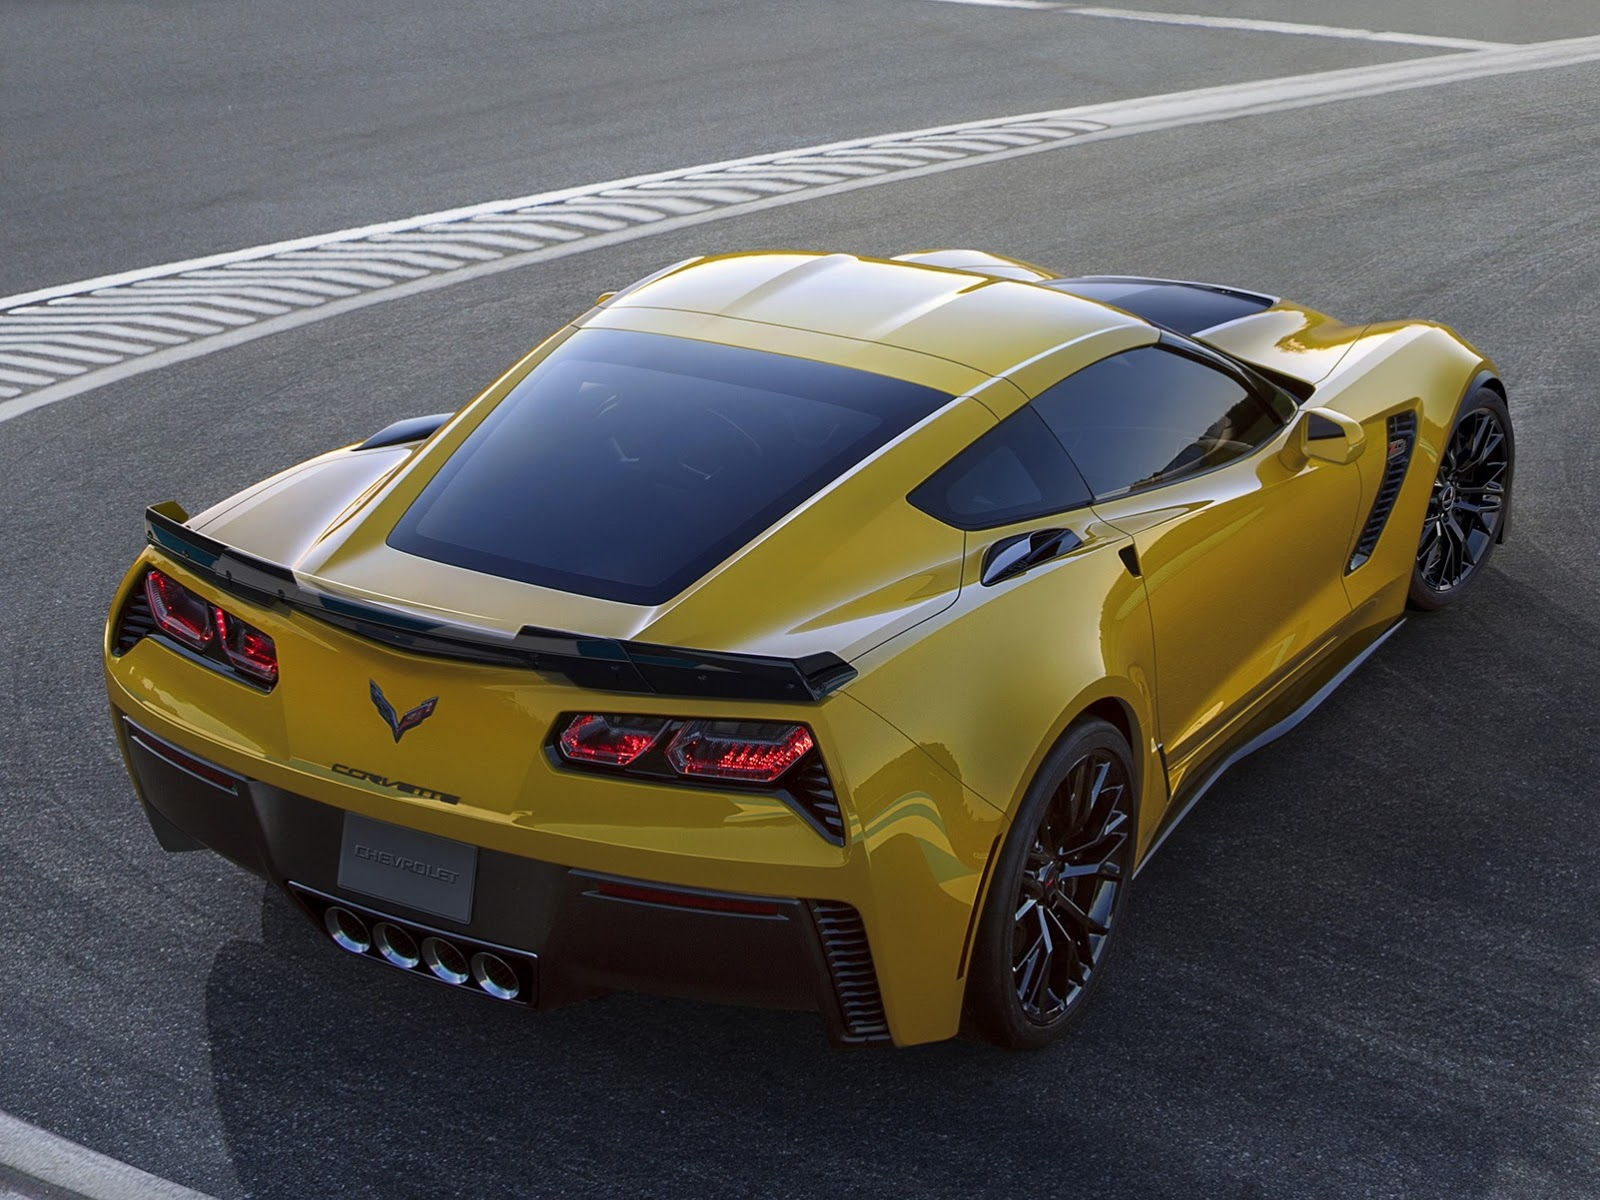 2015 chevrolet corvette z06 diseno art. Black Bedroom Furniture Sets. Home Design Ideas